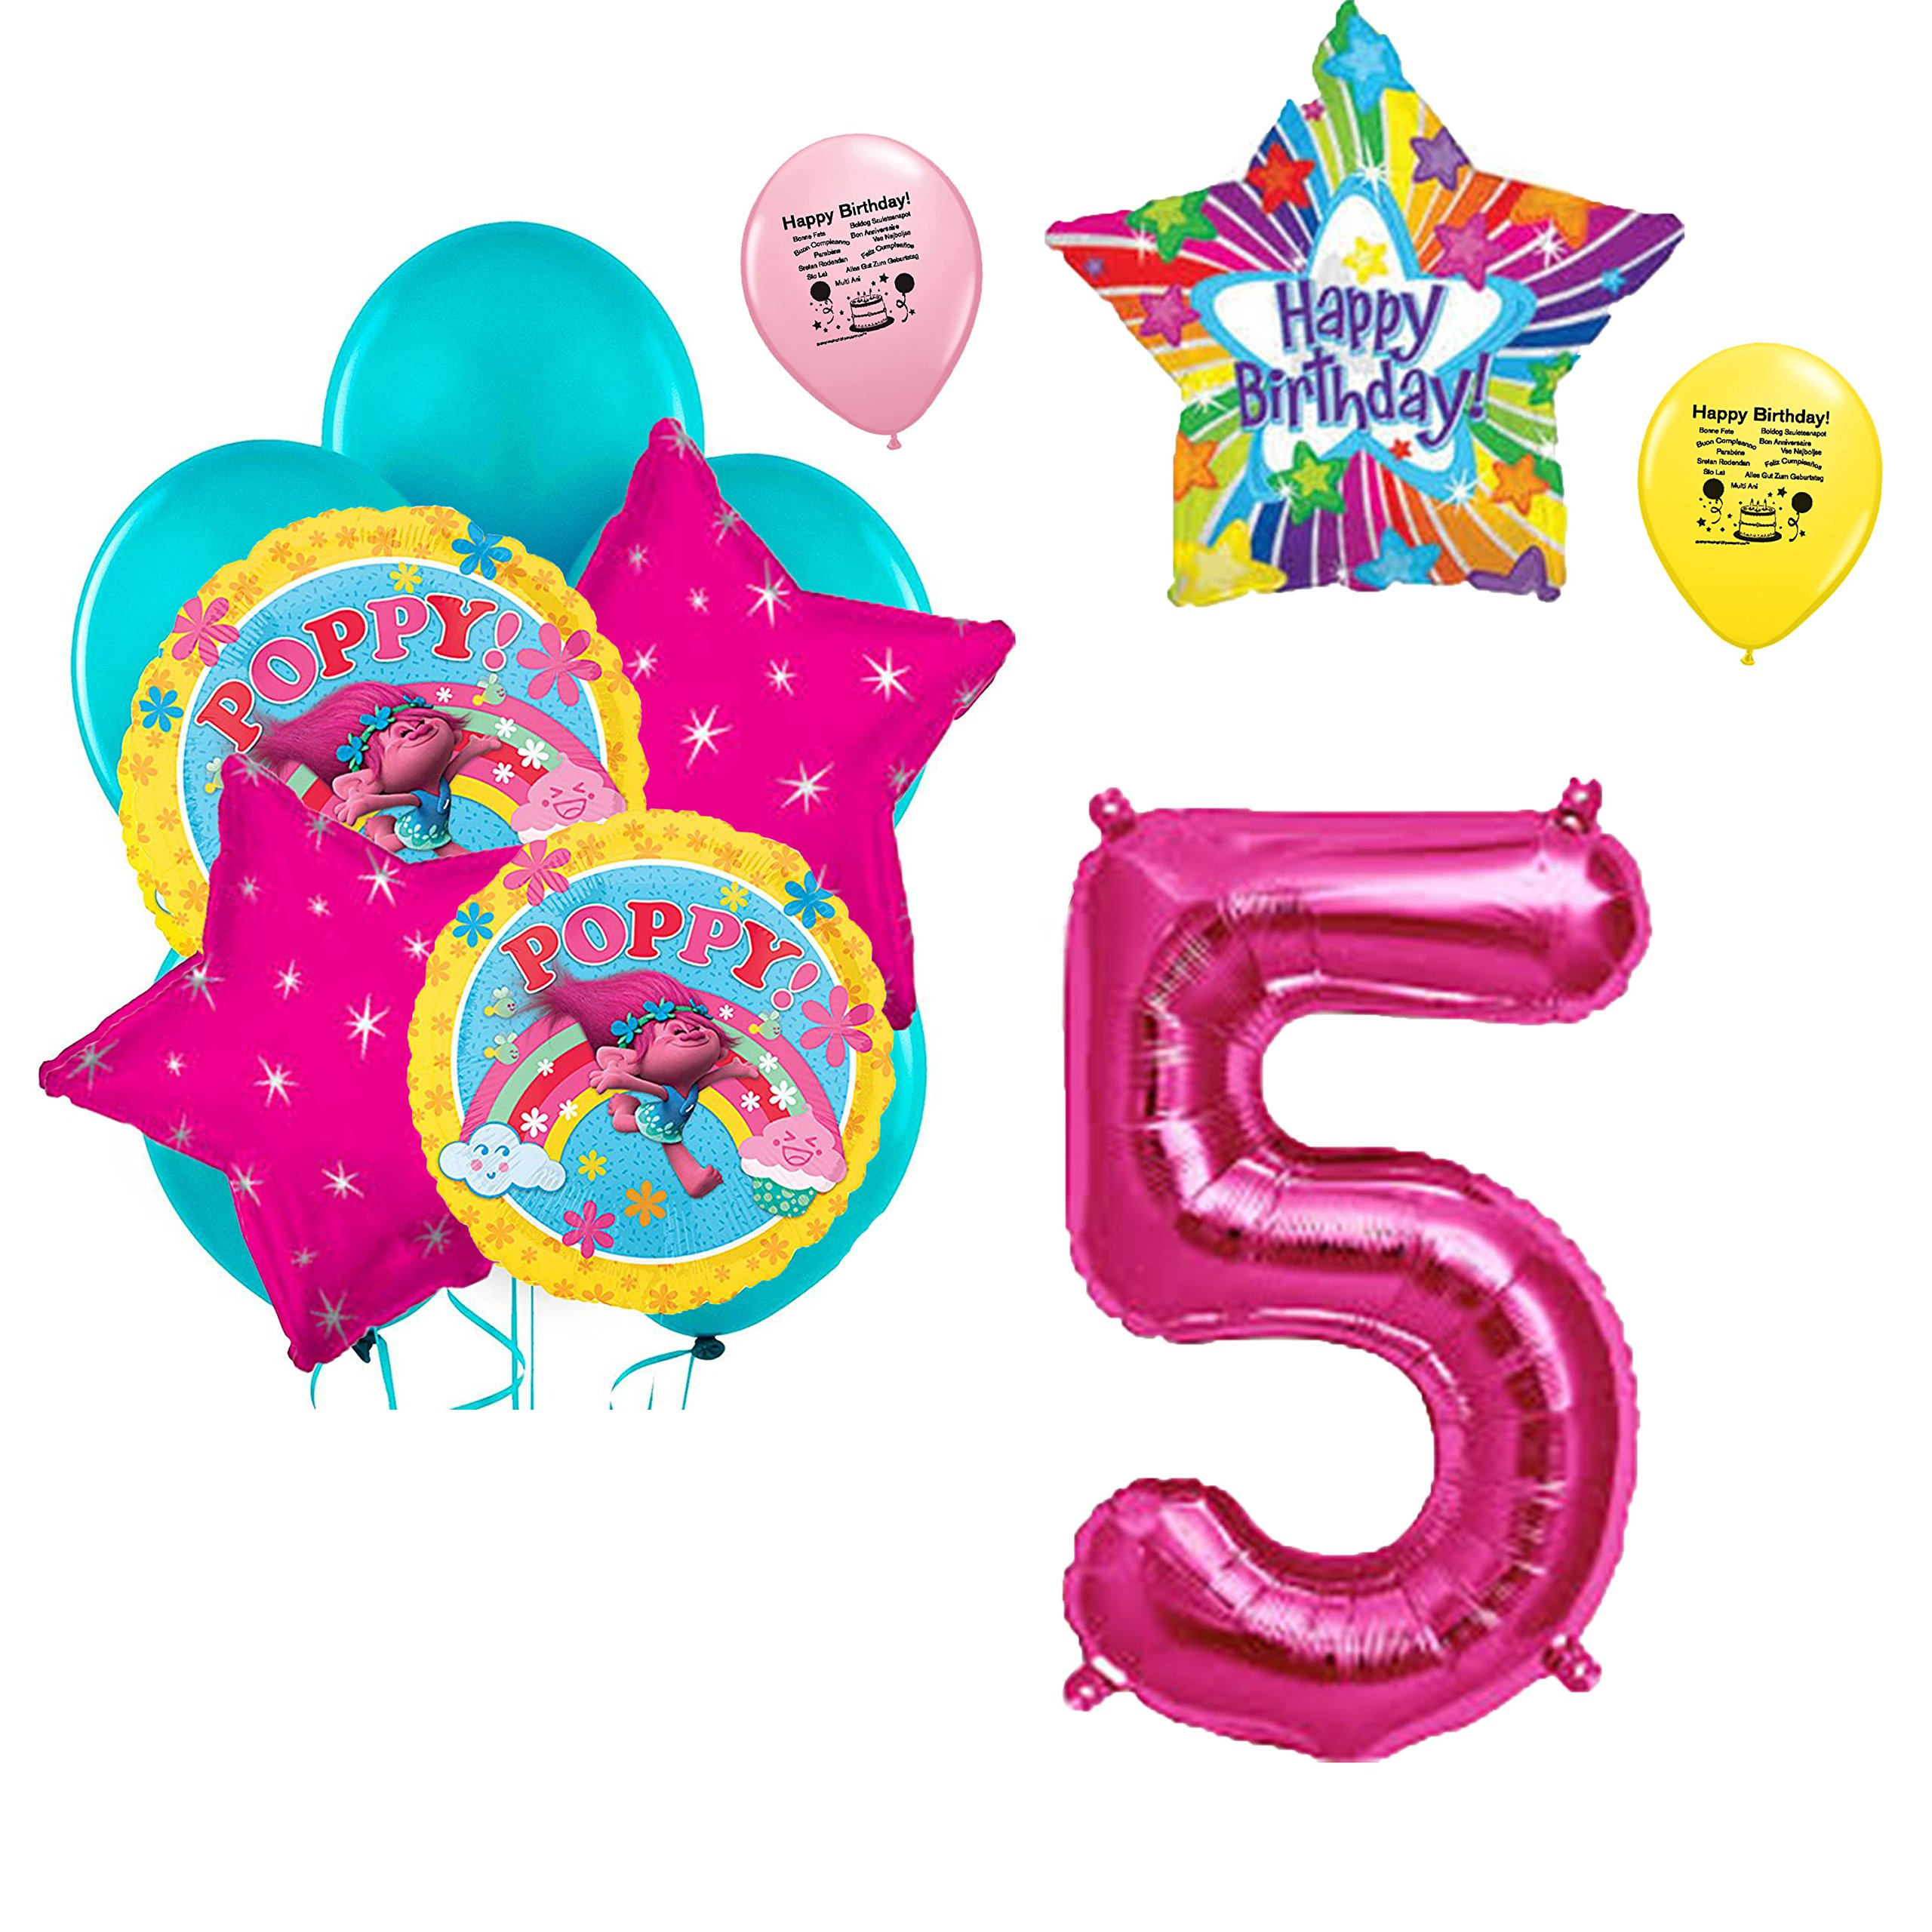 Details About Trolls 5th Birthday Balloon Bouquet